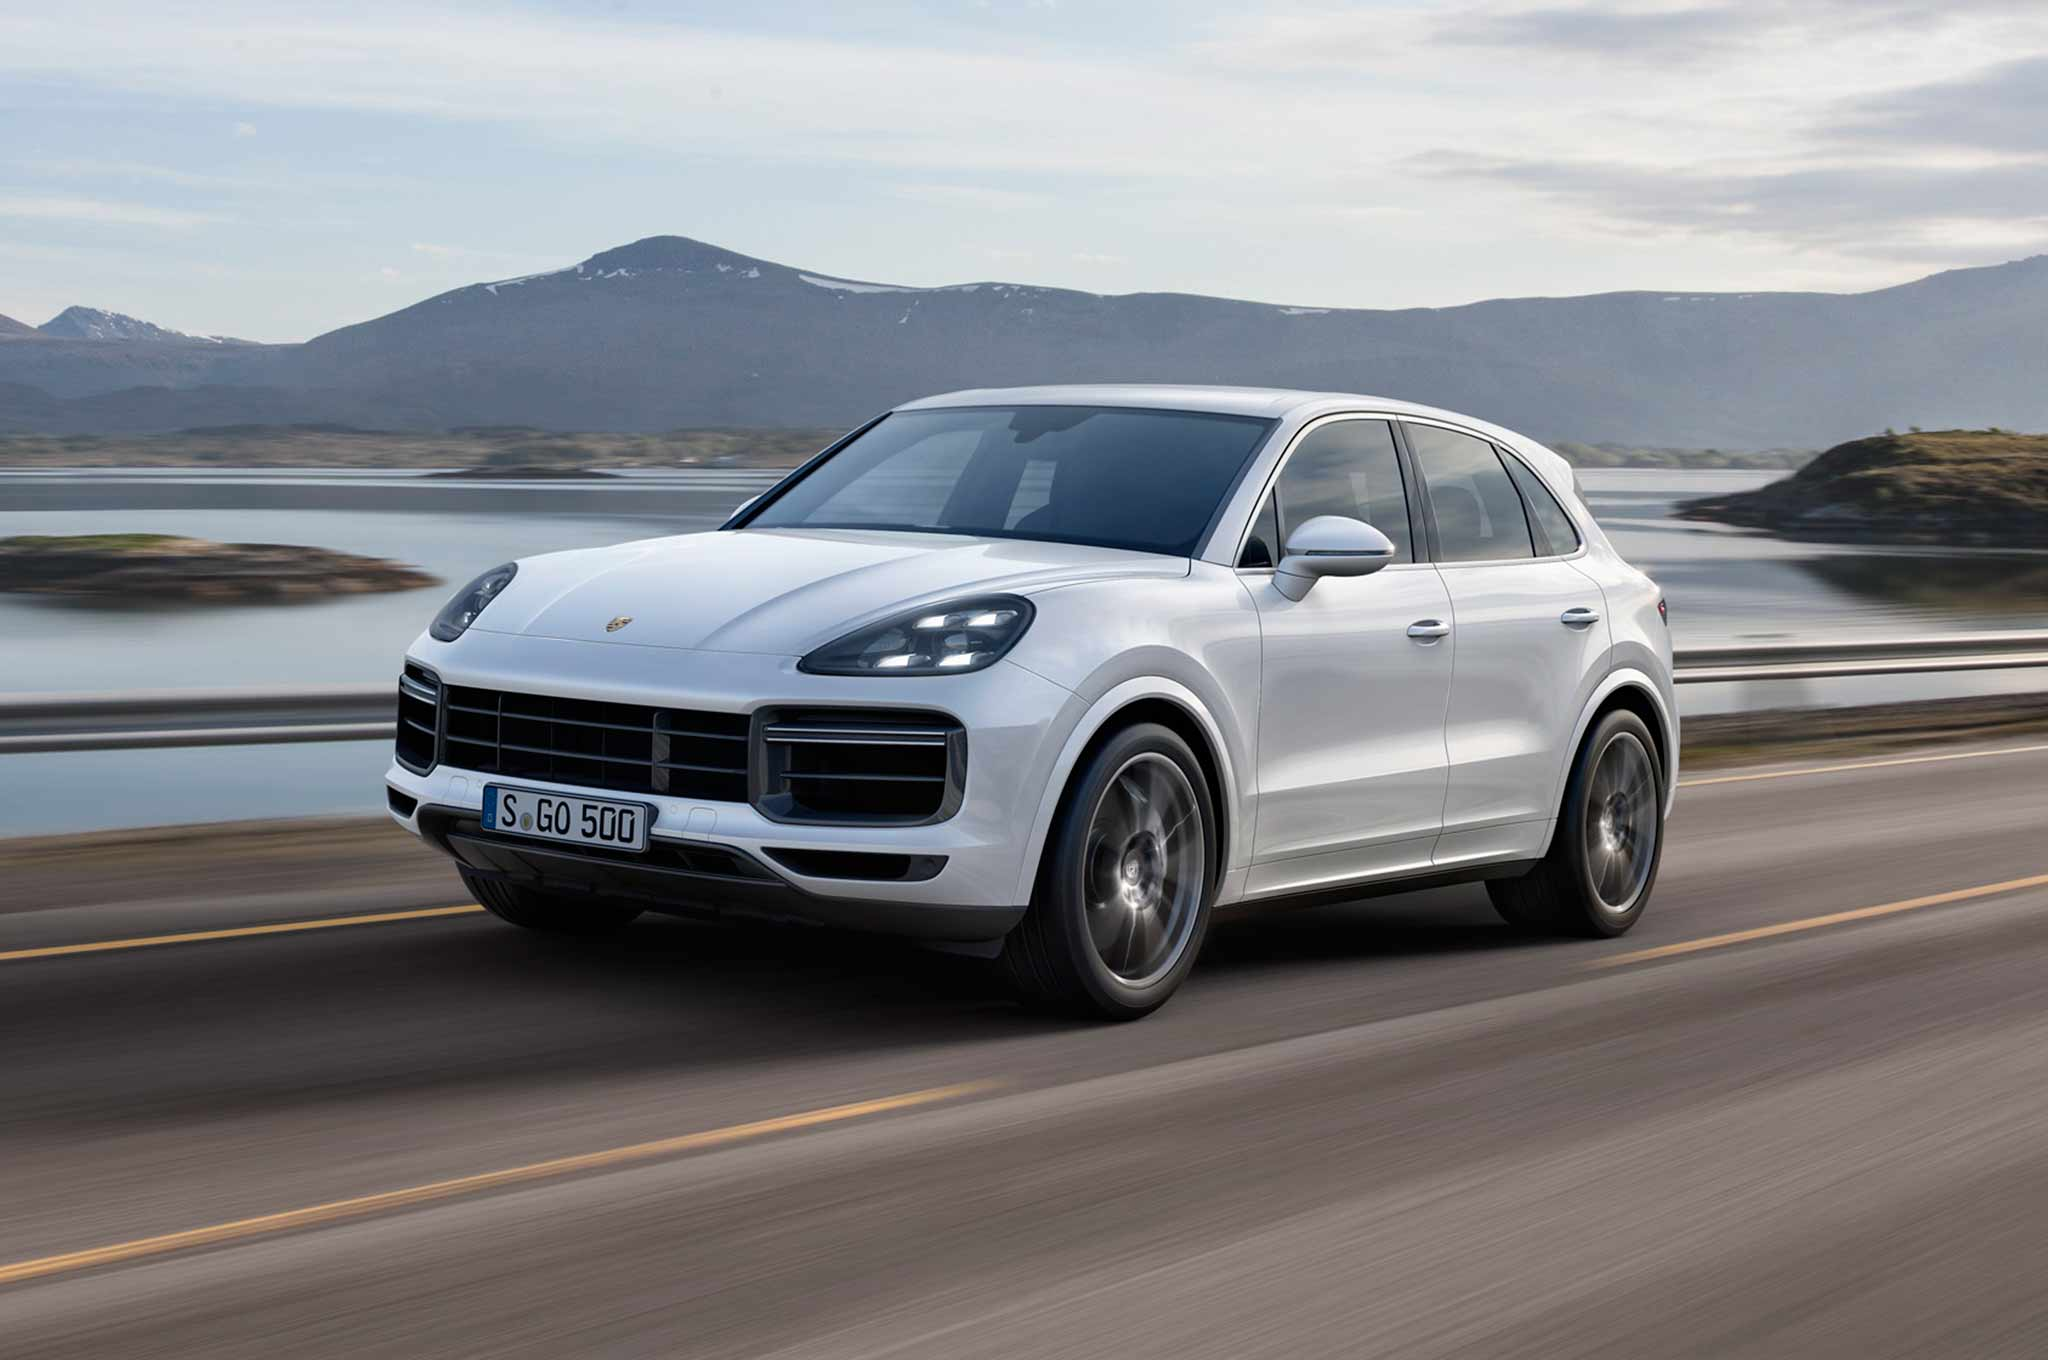 2019 Cayenne Turbo Front Three Quarter Motion